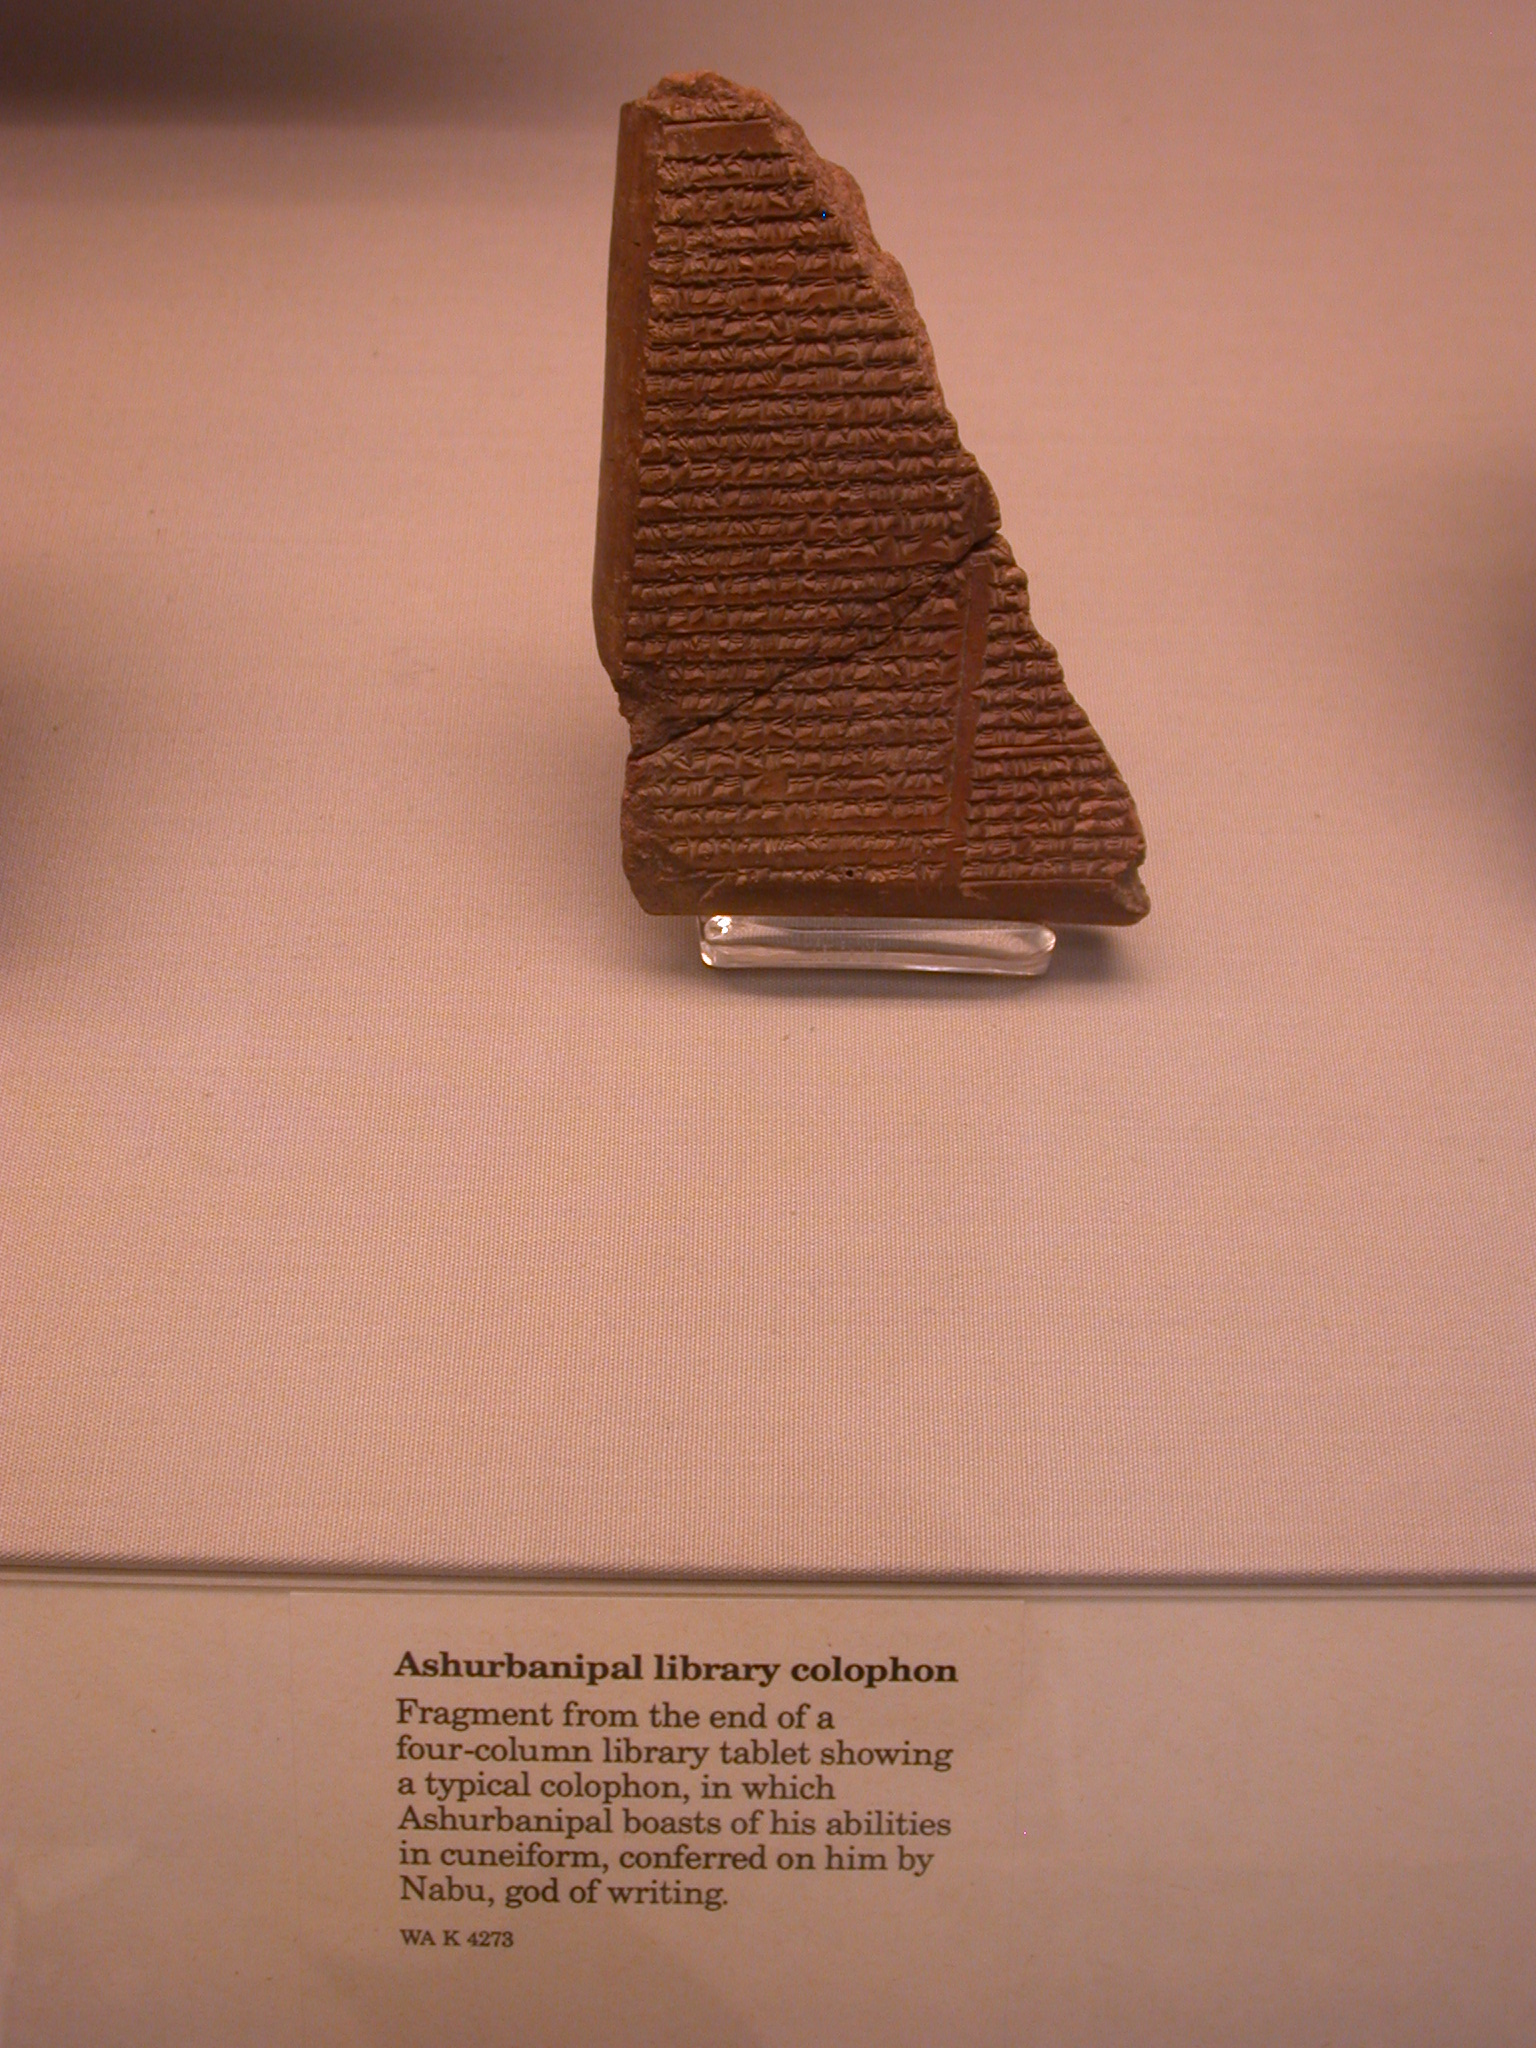 Ashurbanipal Library Colophon Boasting of Writing Powers From Nabu, God of Writing, Cuneiform Tablet, Assyria, in British Museum, London, England